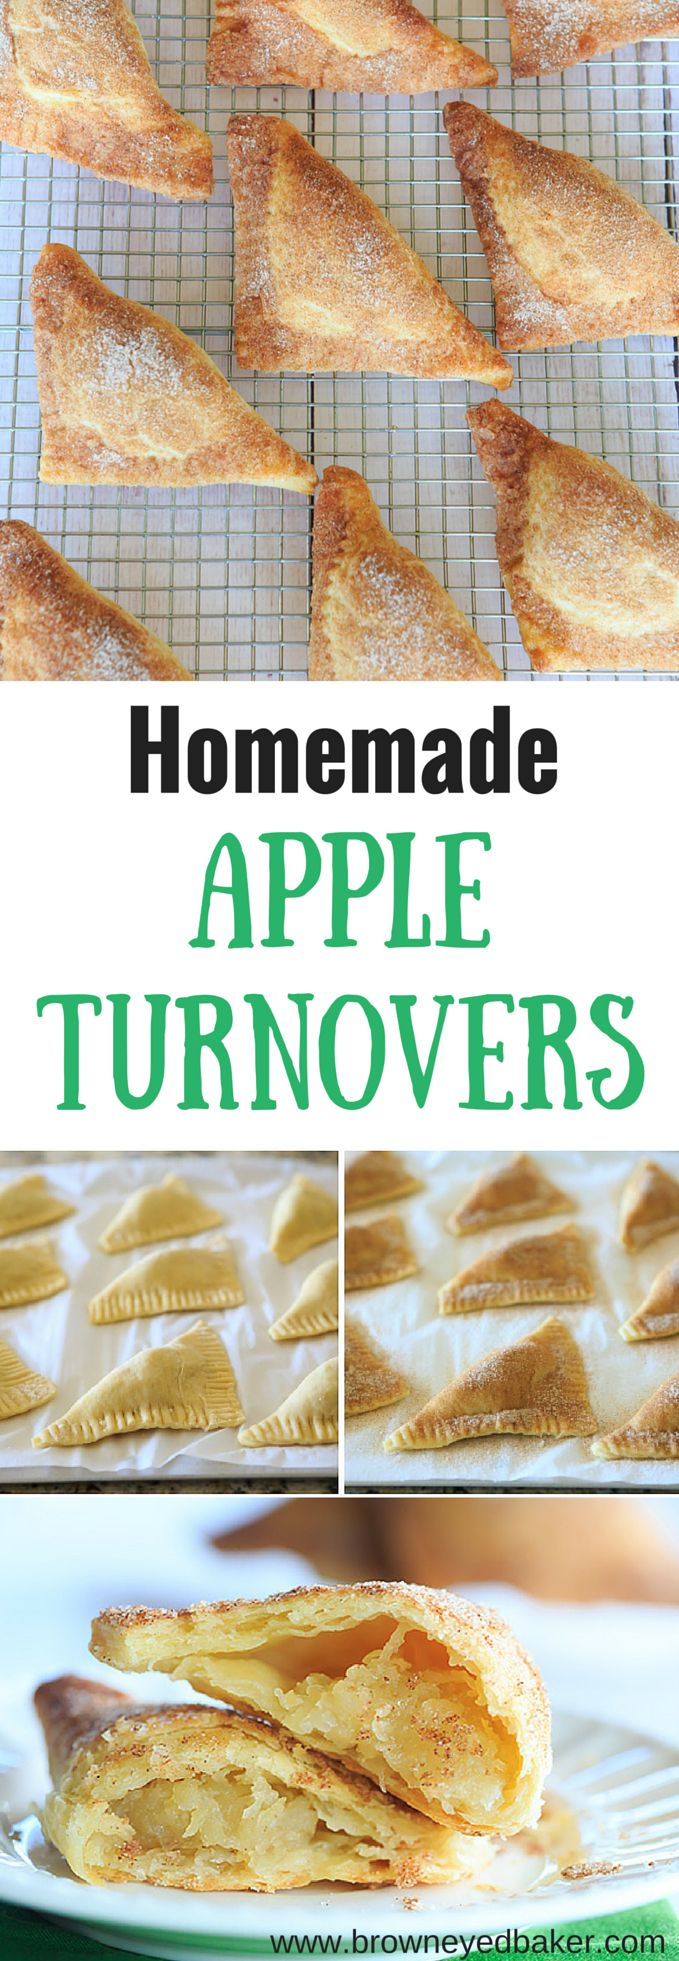 Apple Turnovers FROM SCRATCH! Flaky pastry dough and a slightly sweet apple filling... | http://www.browneyedbaker.com/apple-turnovers-from-scratch/